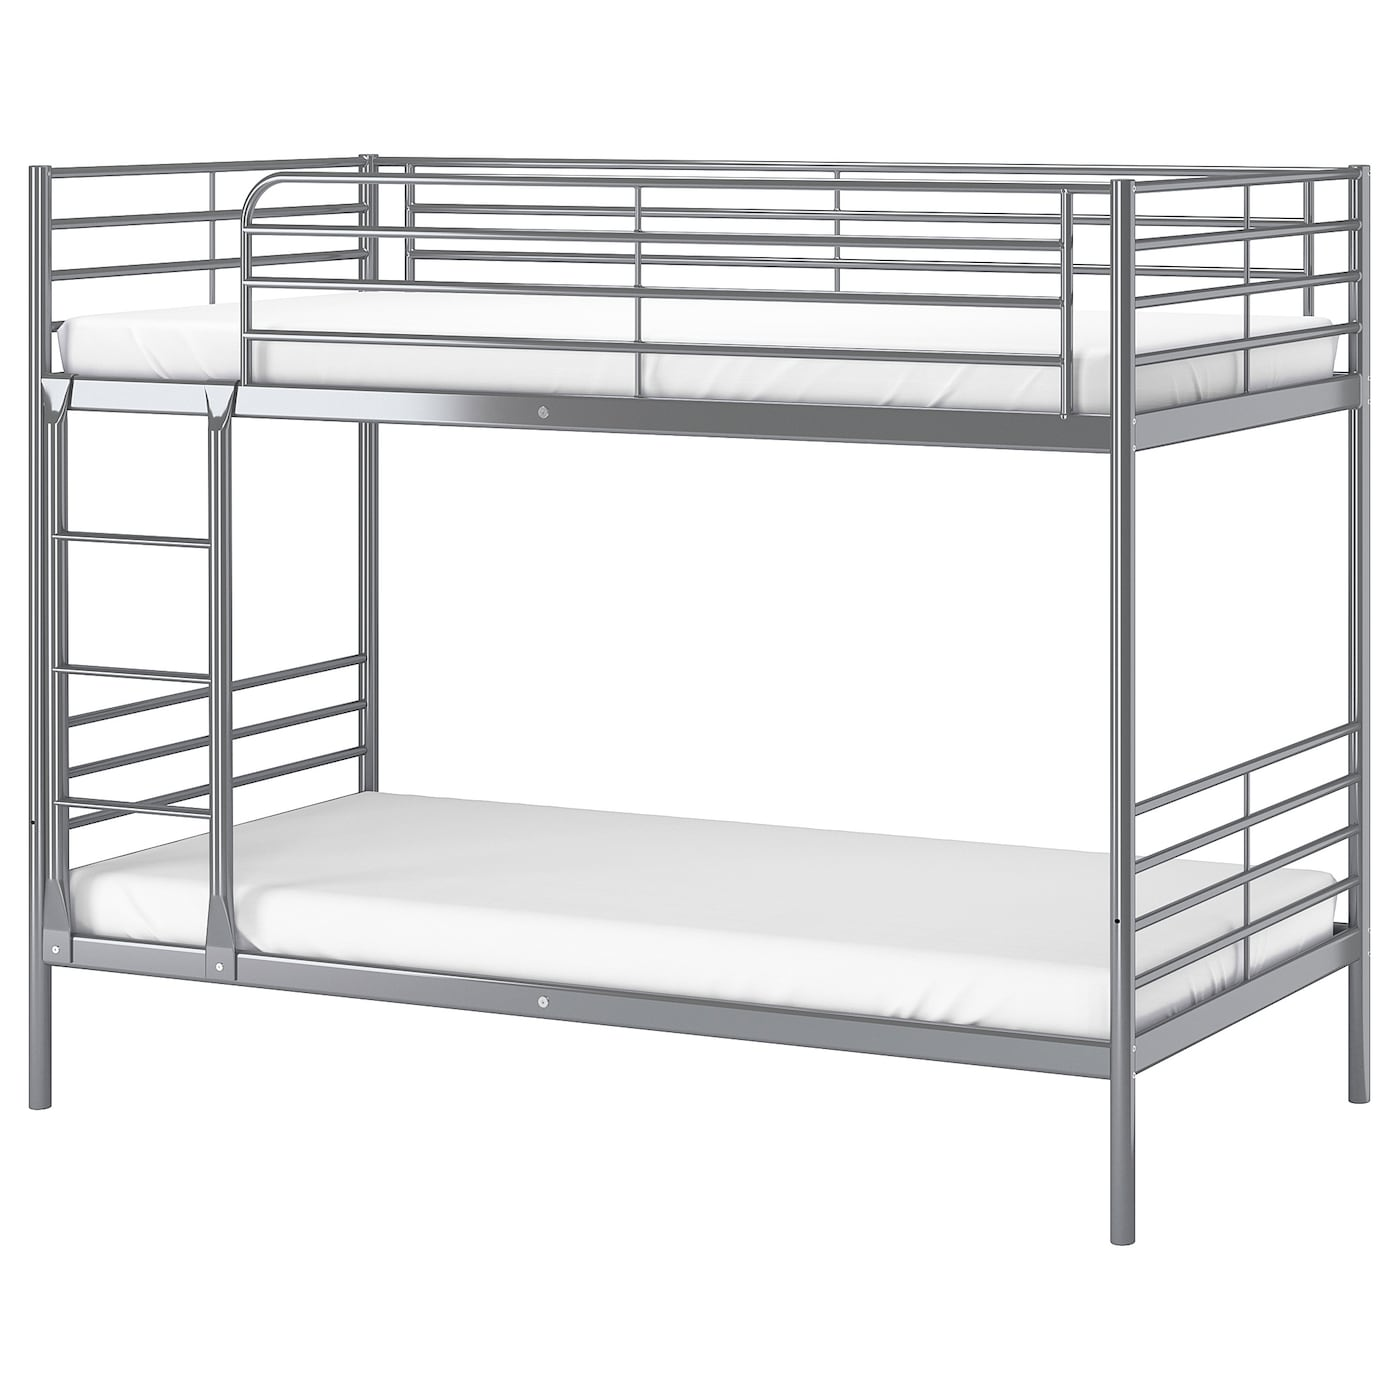 sv rta bunk bed frame silver colour 90 x 200 cm ikea. Black Bedroom Furniture Sets. Home Design Ideas